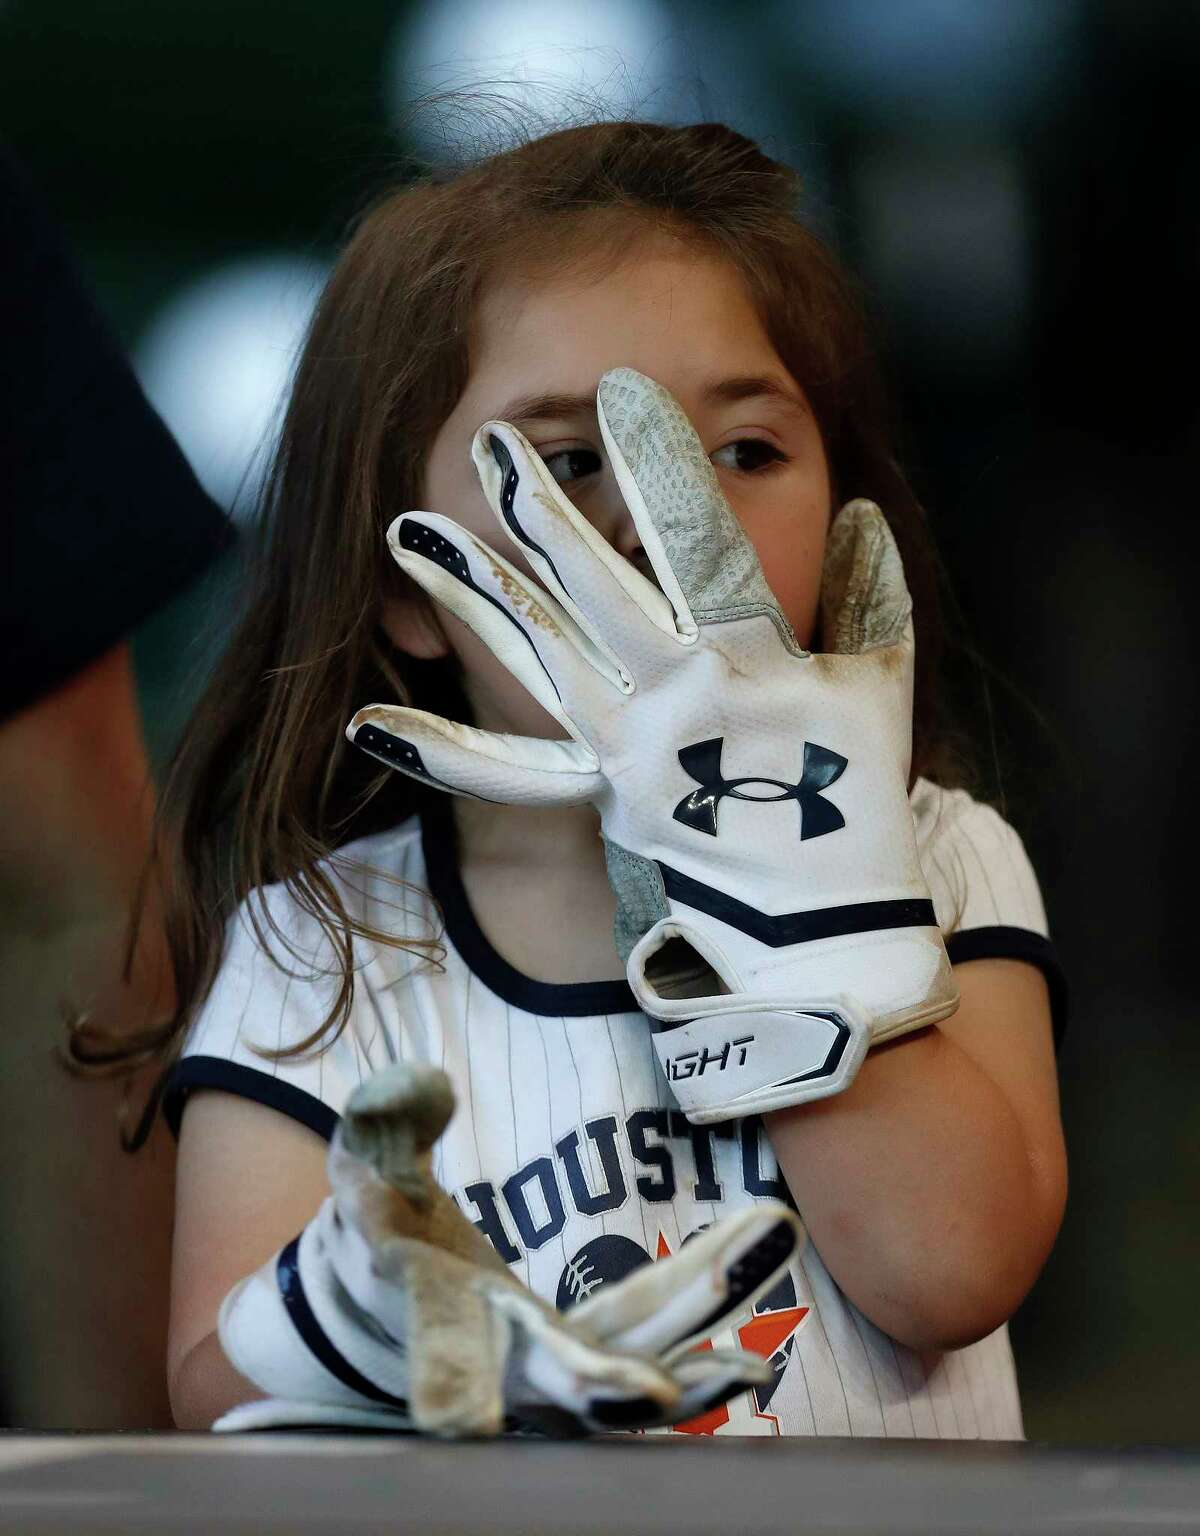 Lilliana Cardoza, 3, wears a pair of batting gloves given to her by Astros catcher Brian McCann during batting practice before the start of an MLB baseball game at Minute Maid Park, Tuesday, April 4, 2017, in Houston.